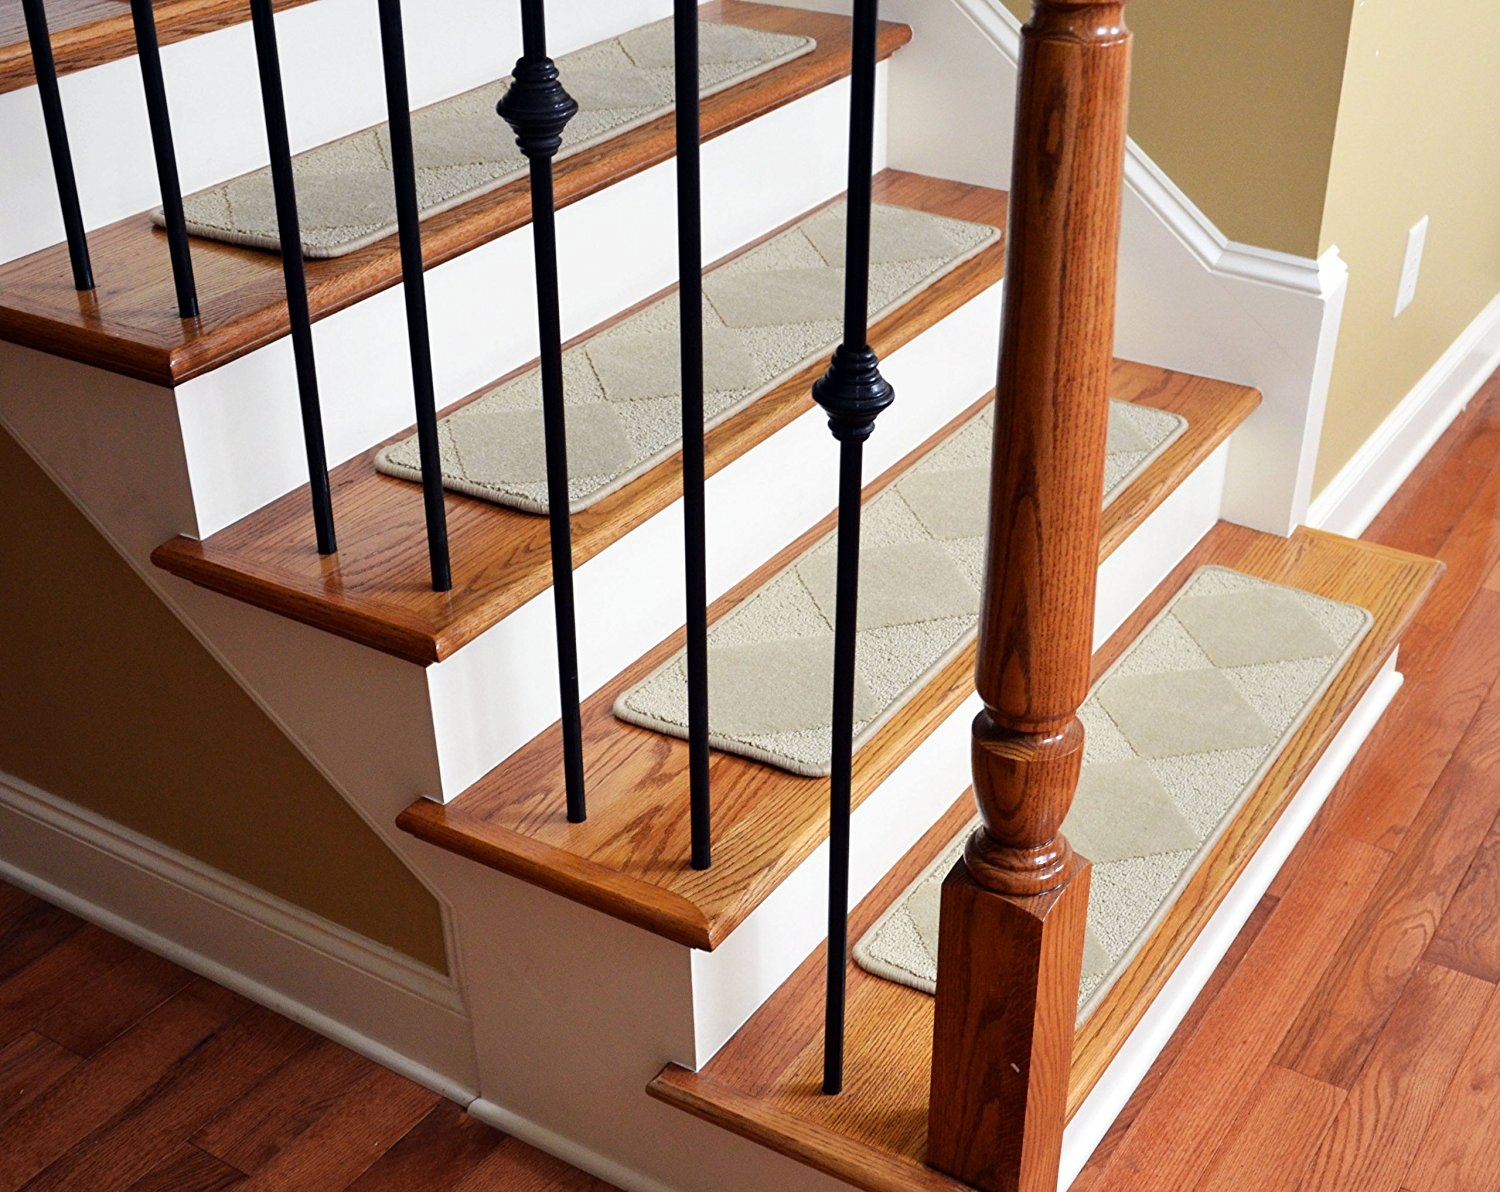 Wood Stair Tread Covers Excellent Image Of Home Interior Intended For Stair Tread Carpet Protectors (#20 of 20)